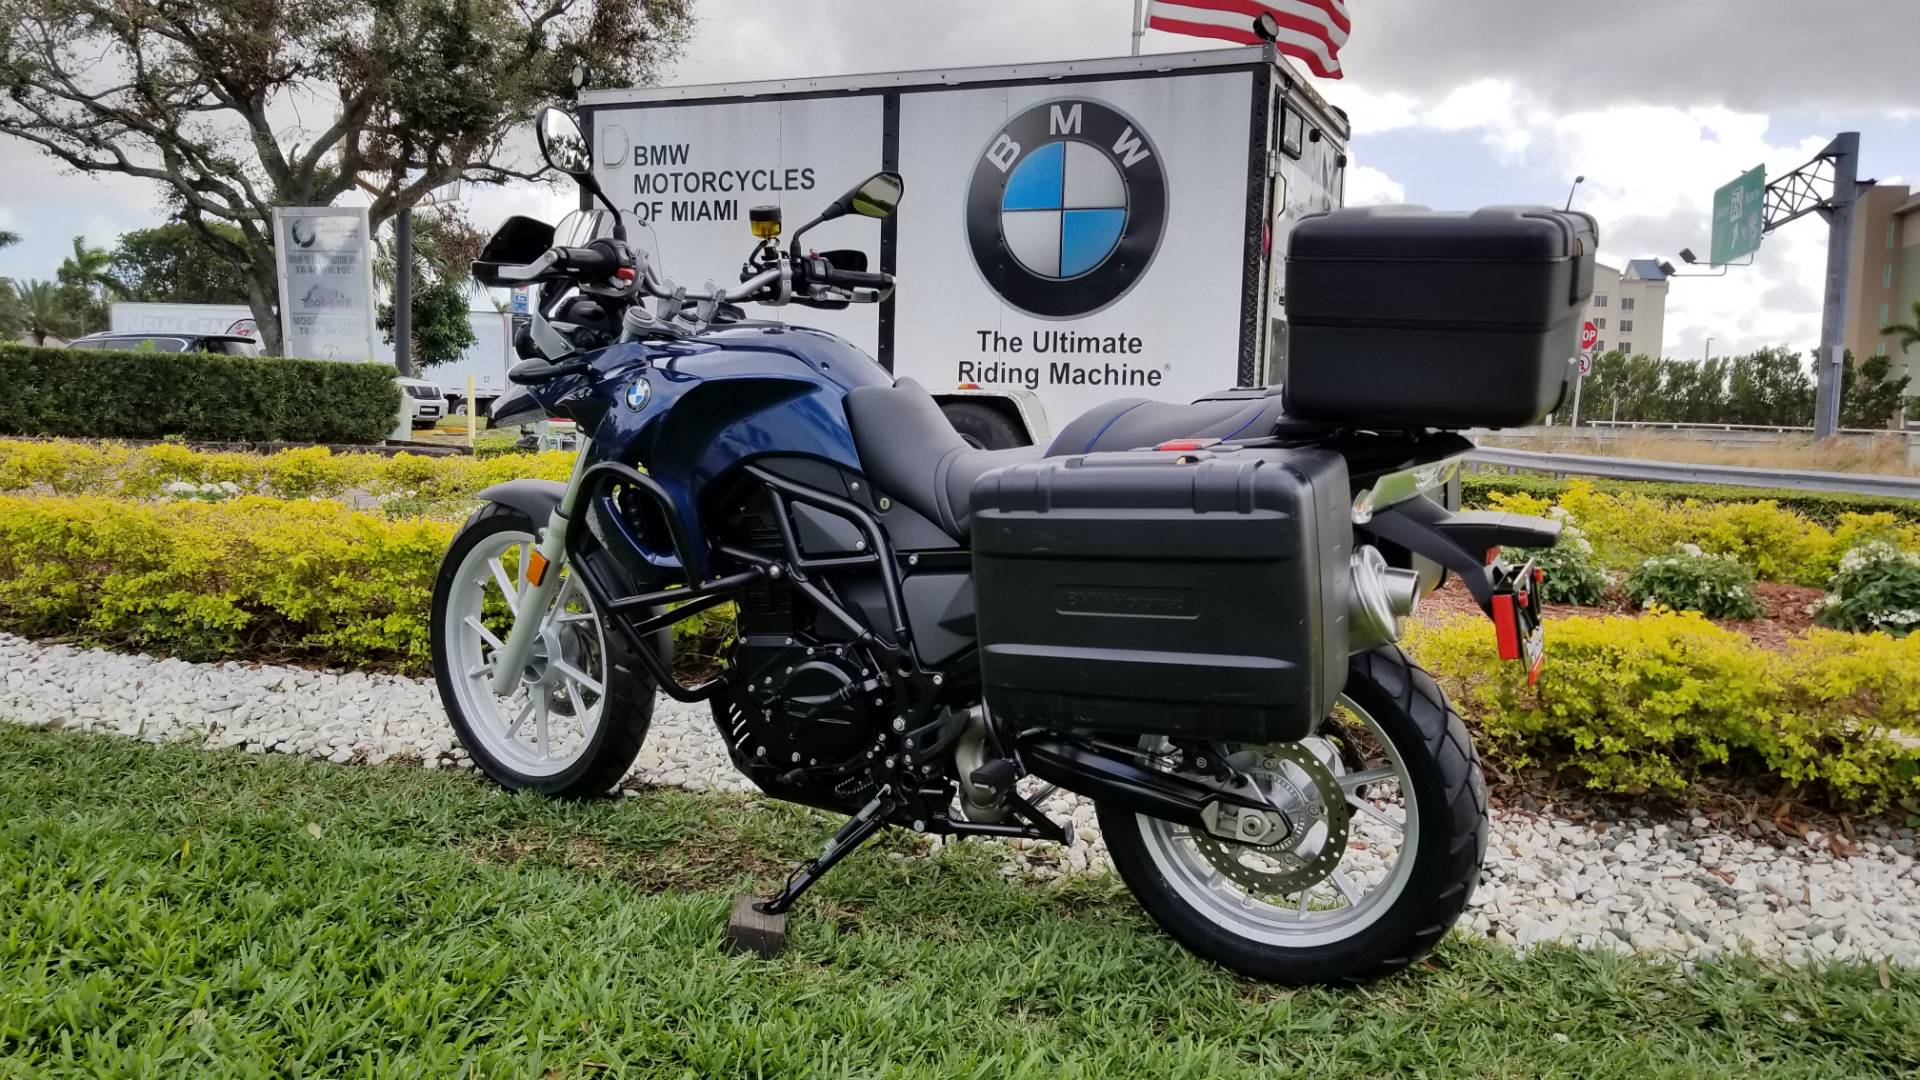 Used 2012 BMW F 650 GS For Sale, BMW F 650GS For Sale, Pre-Owned BMW Motorcycle F650GS, Pre owned BMW Motorcycle, 650, GS, BMW